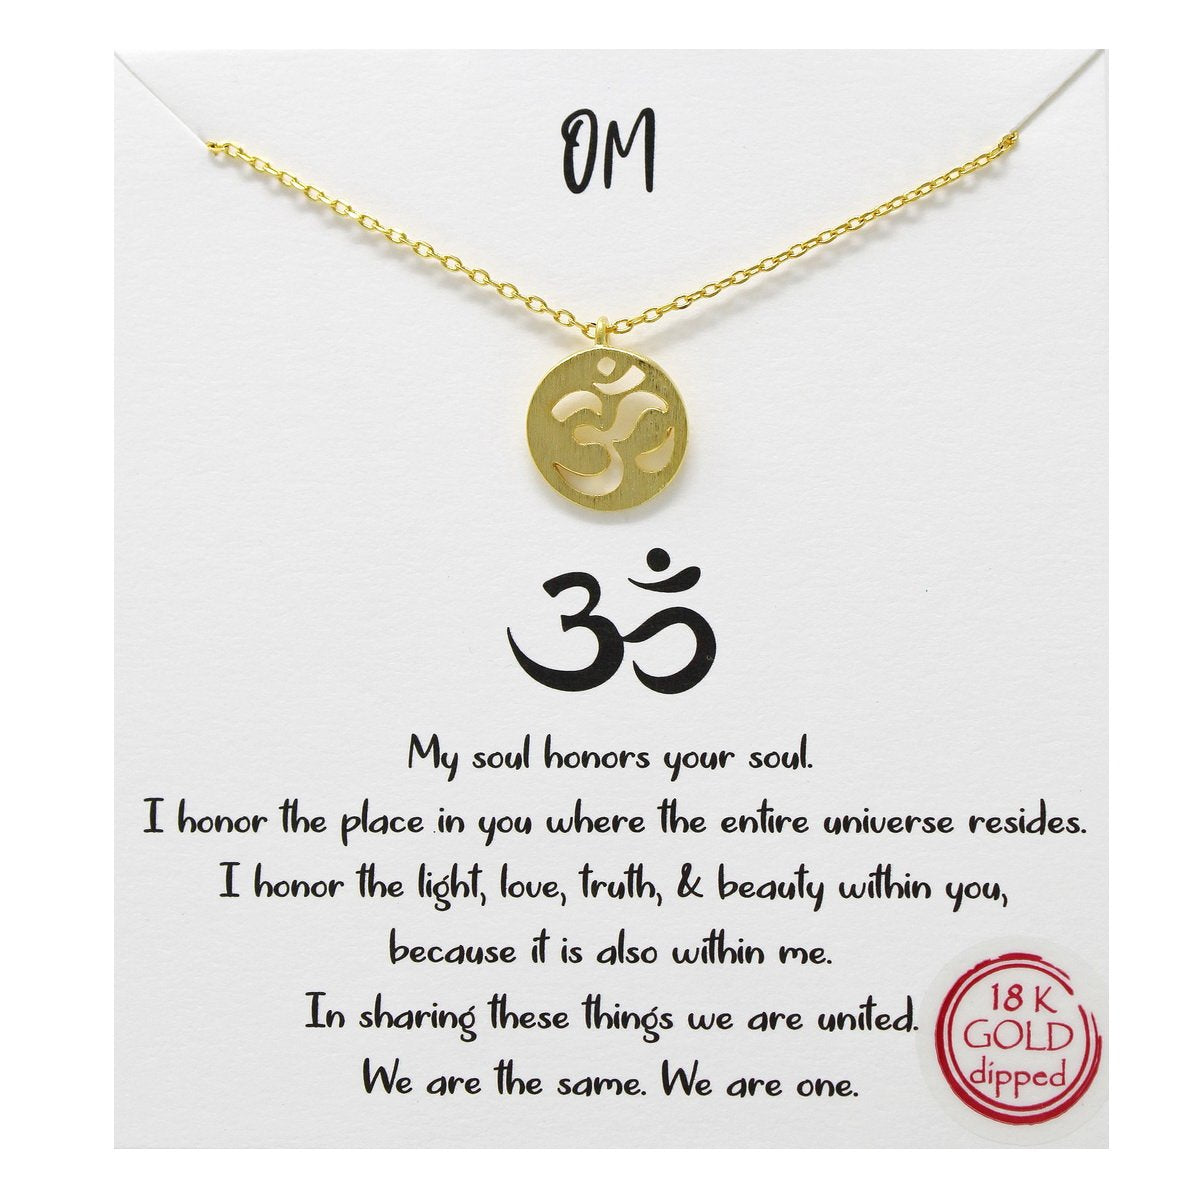 OM - Necklace